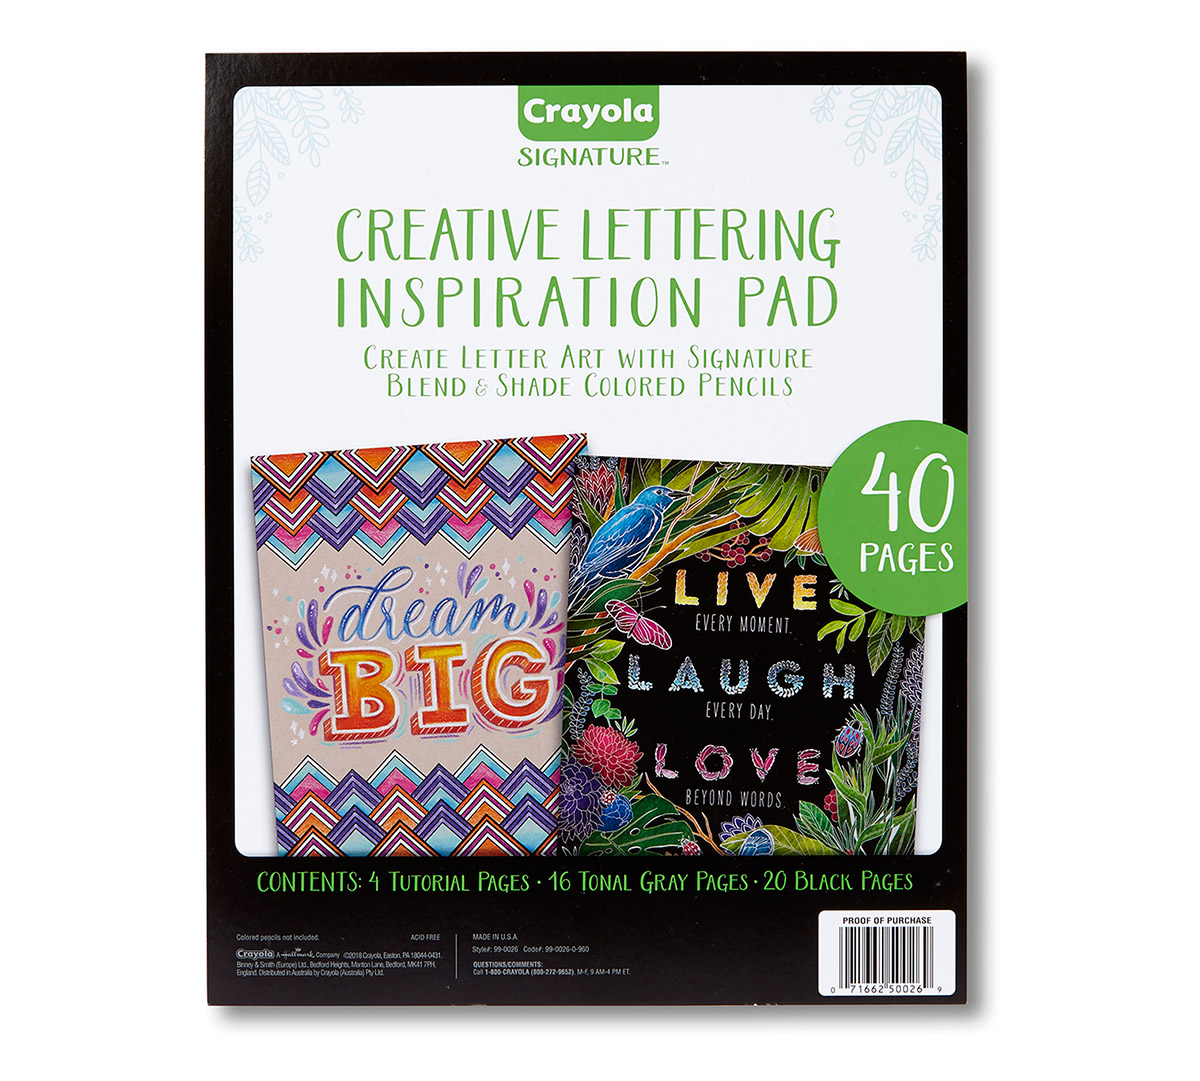 Signature Creative Lettering Inspiration Pad